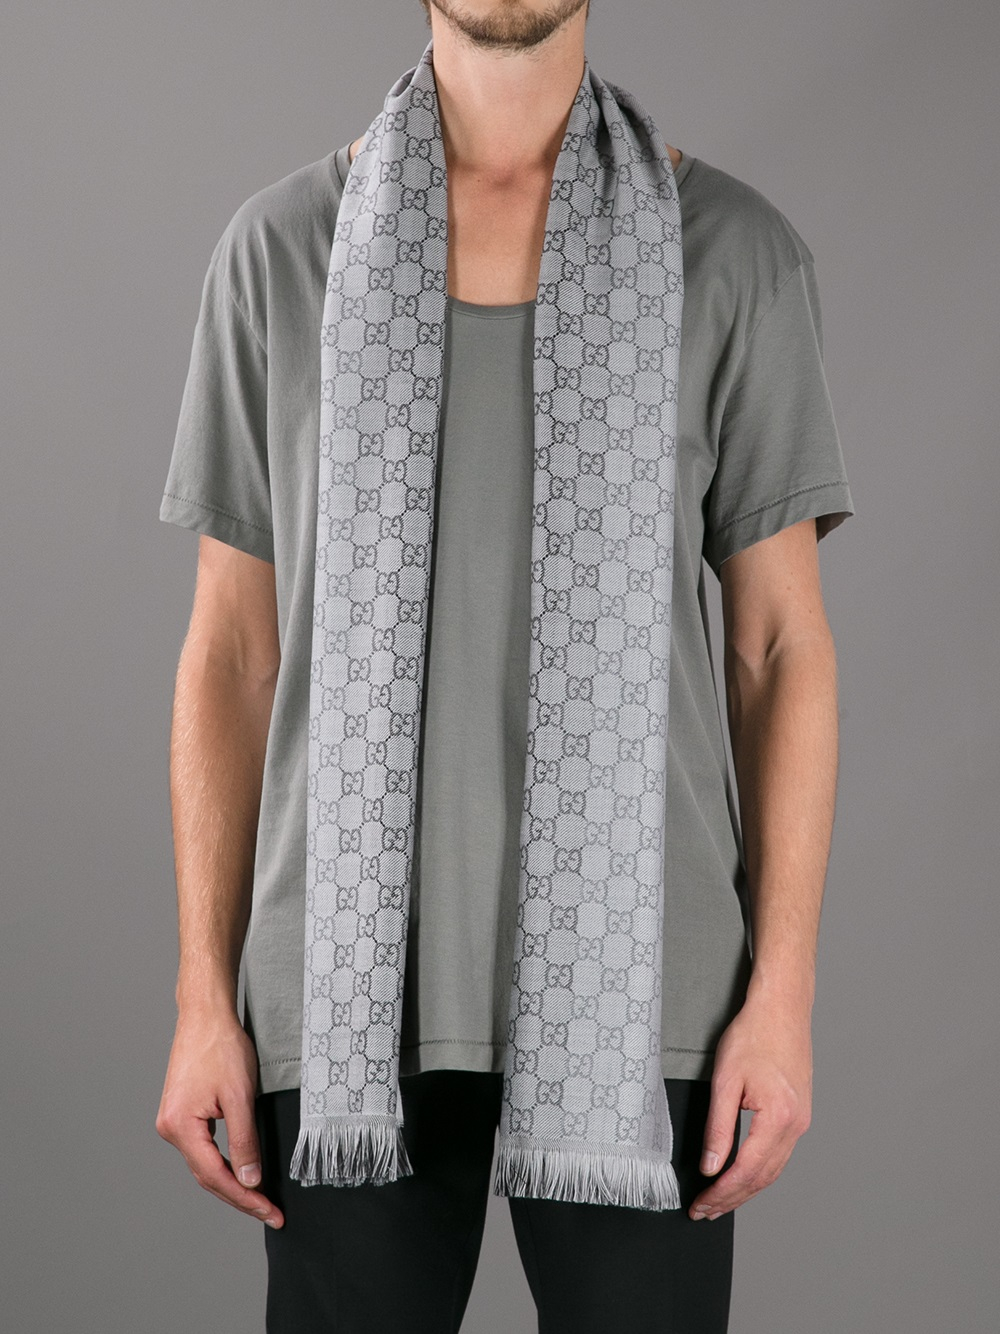 gucci branded mixed print scarf in gray for men lyst